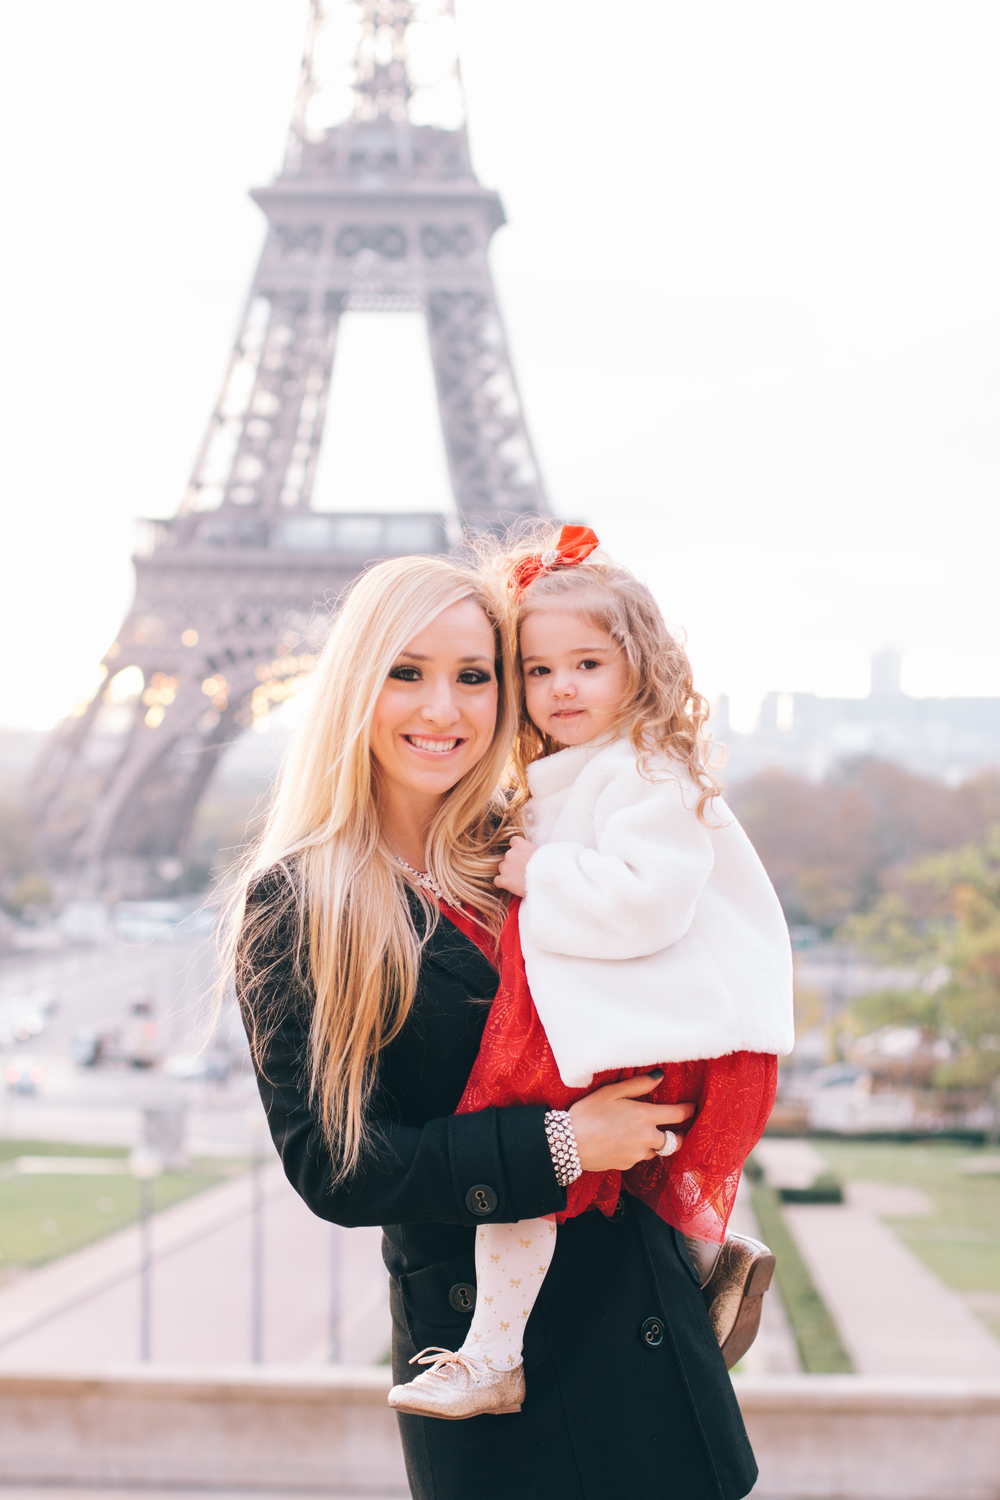 FLYTOGRAPHER | Paris Vacation Photographer - 2